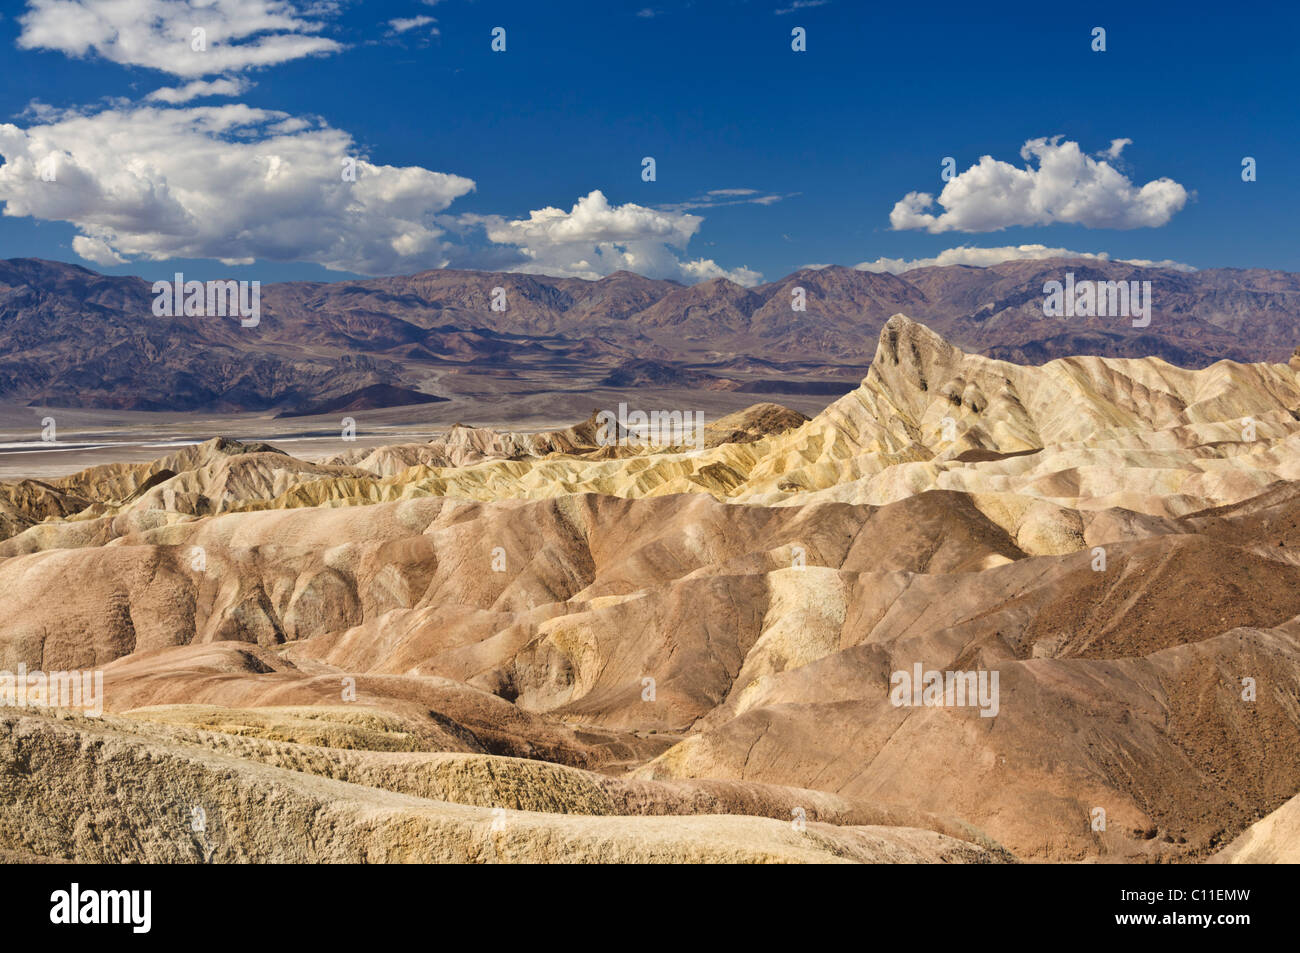 Manly Beacon at Zabriskie Point, Furnace creek, Death Valley National Park, California, USA - Stock Image